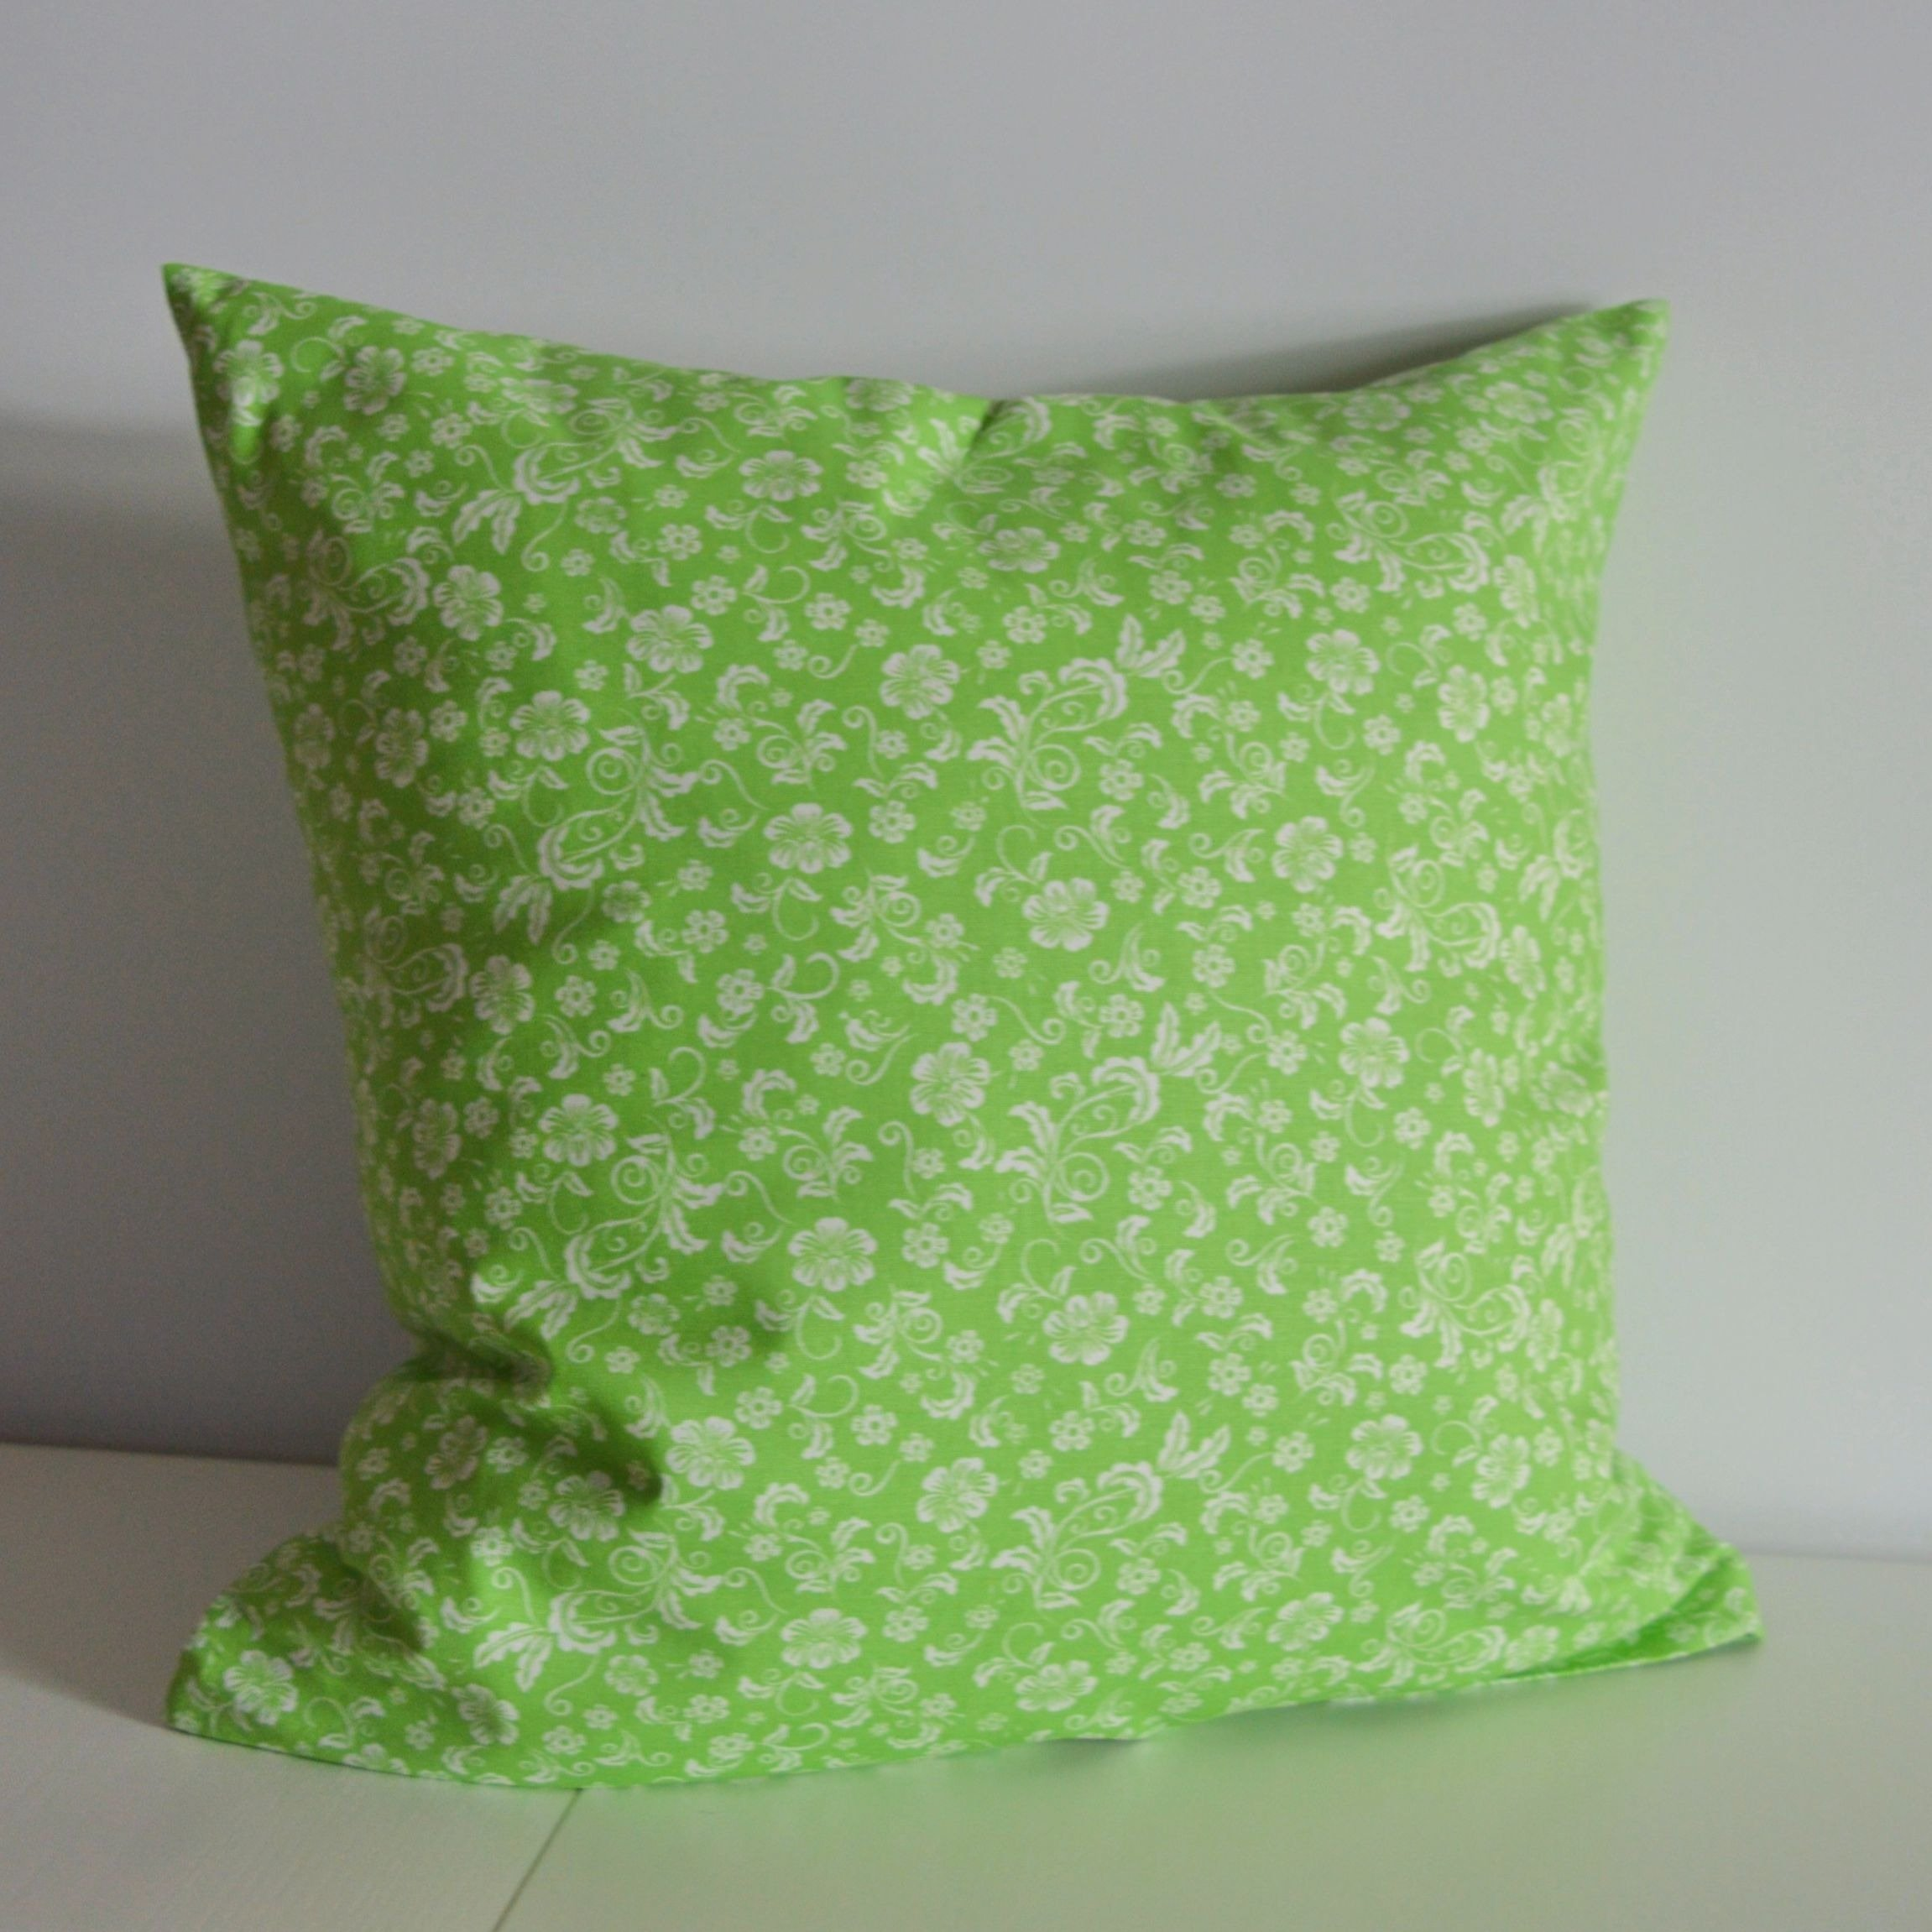 Sewing Pillowcase 3 Ways To Make Closure Beginner Sewing Tutorial